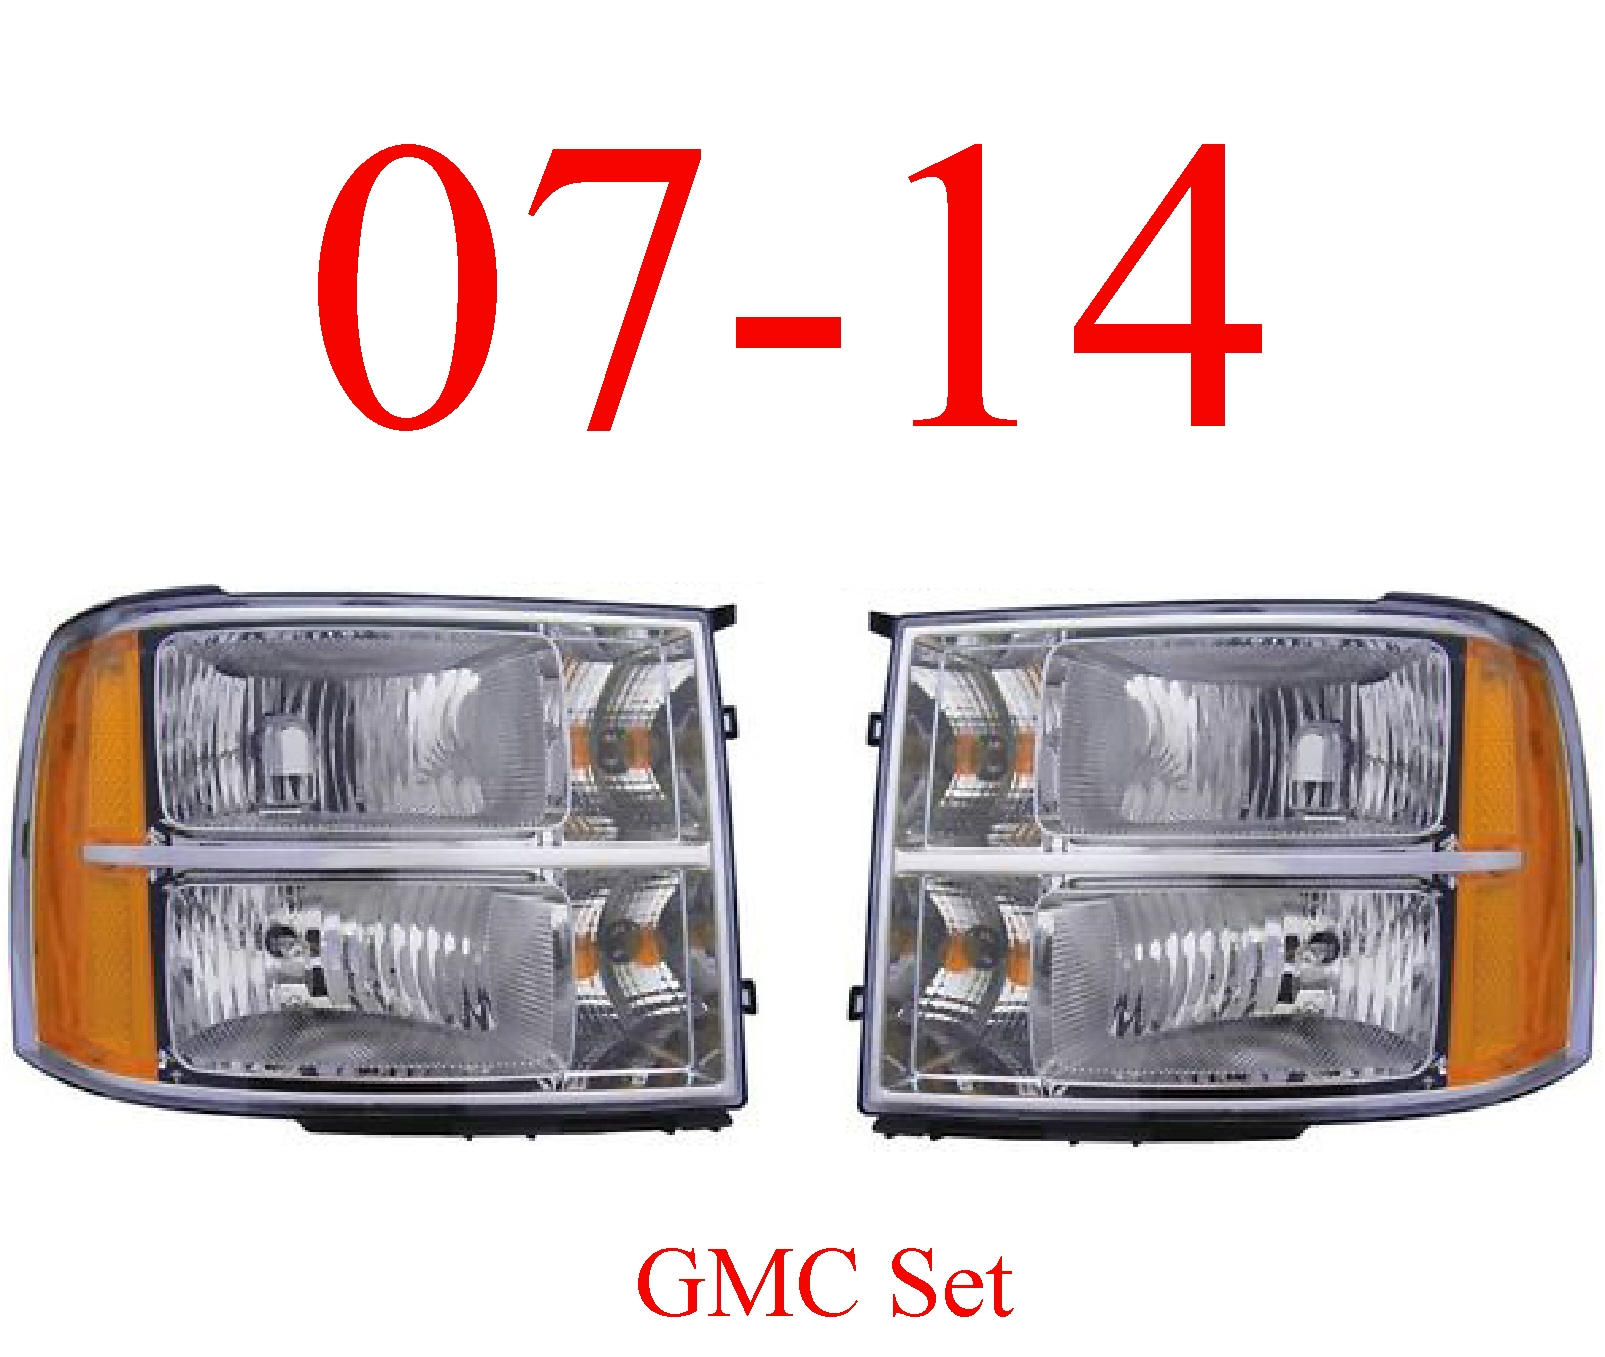 07-13 GMC Head Light Set, Complete Assembly